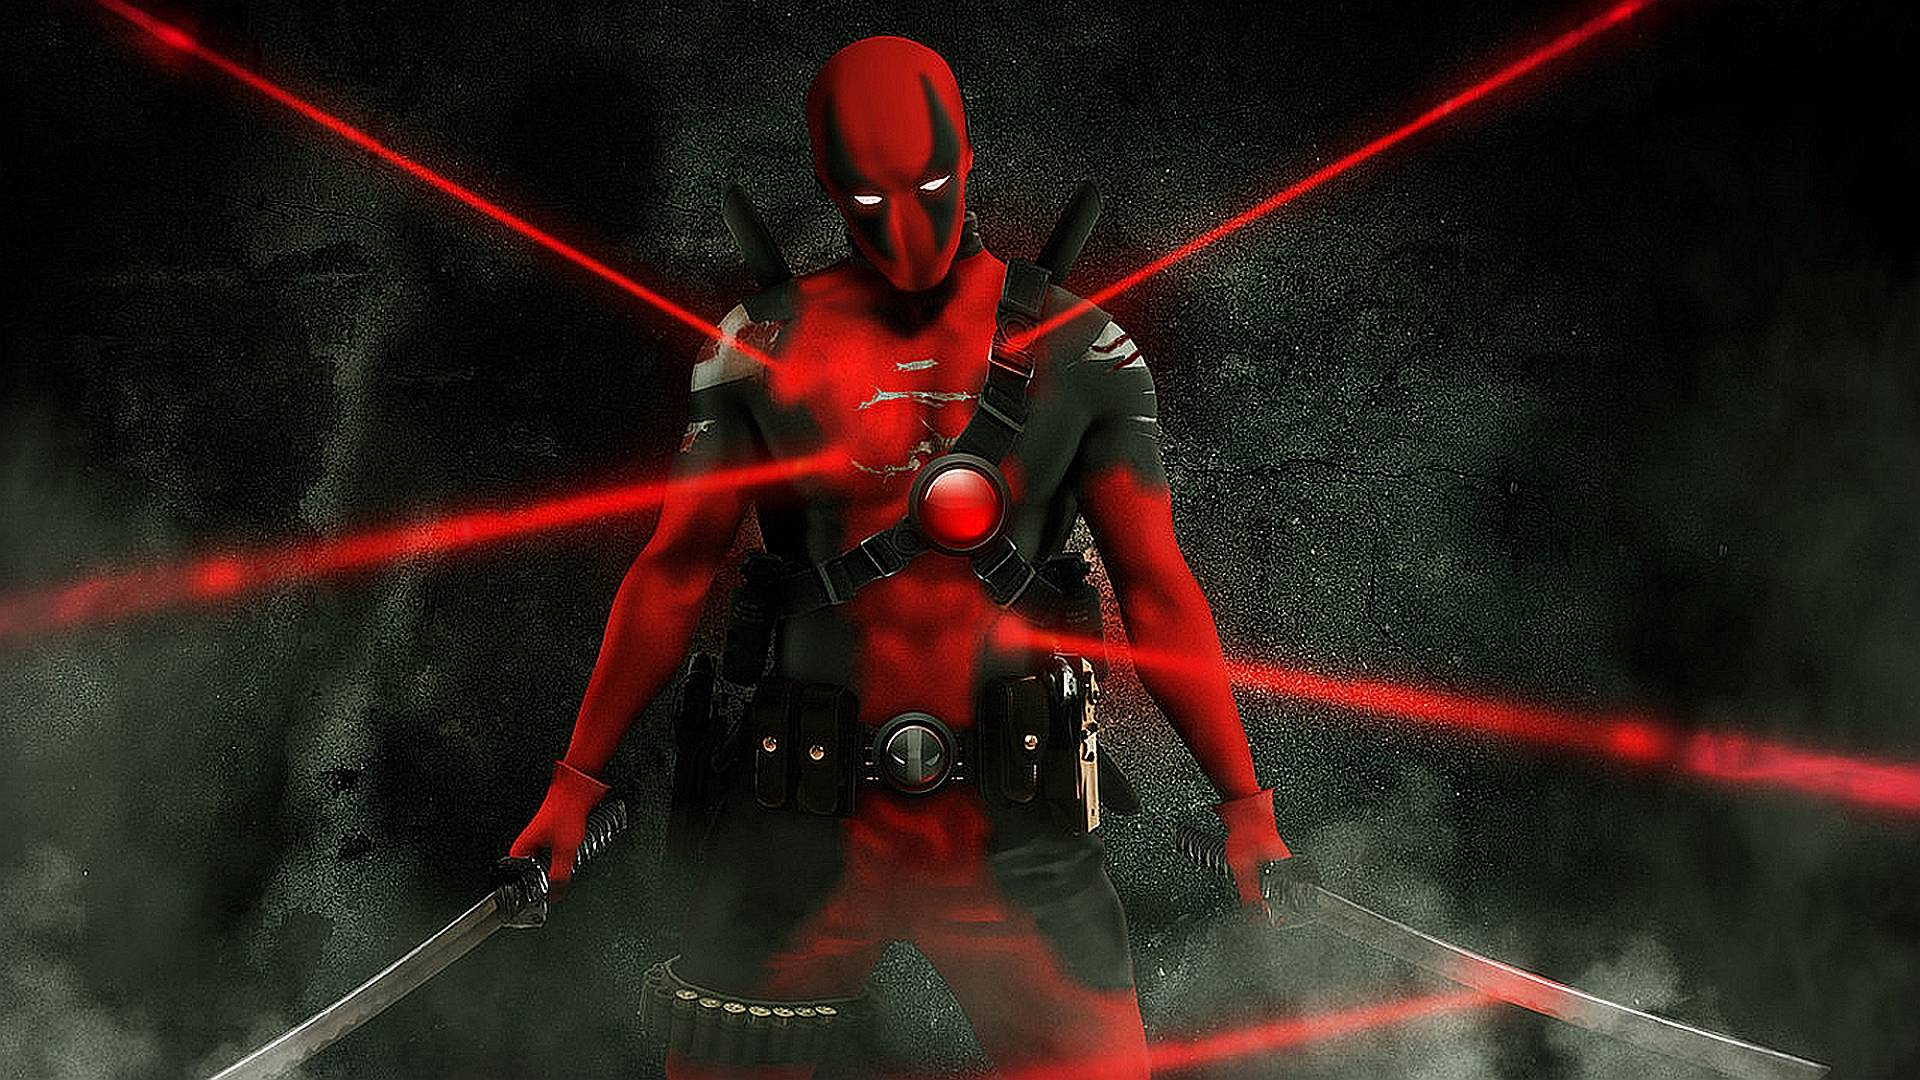 deadpool movie wallpapers - wallpaper cave